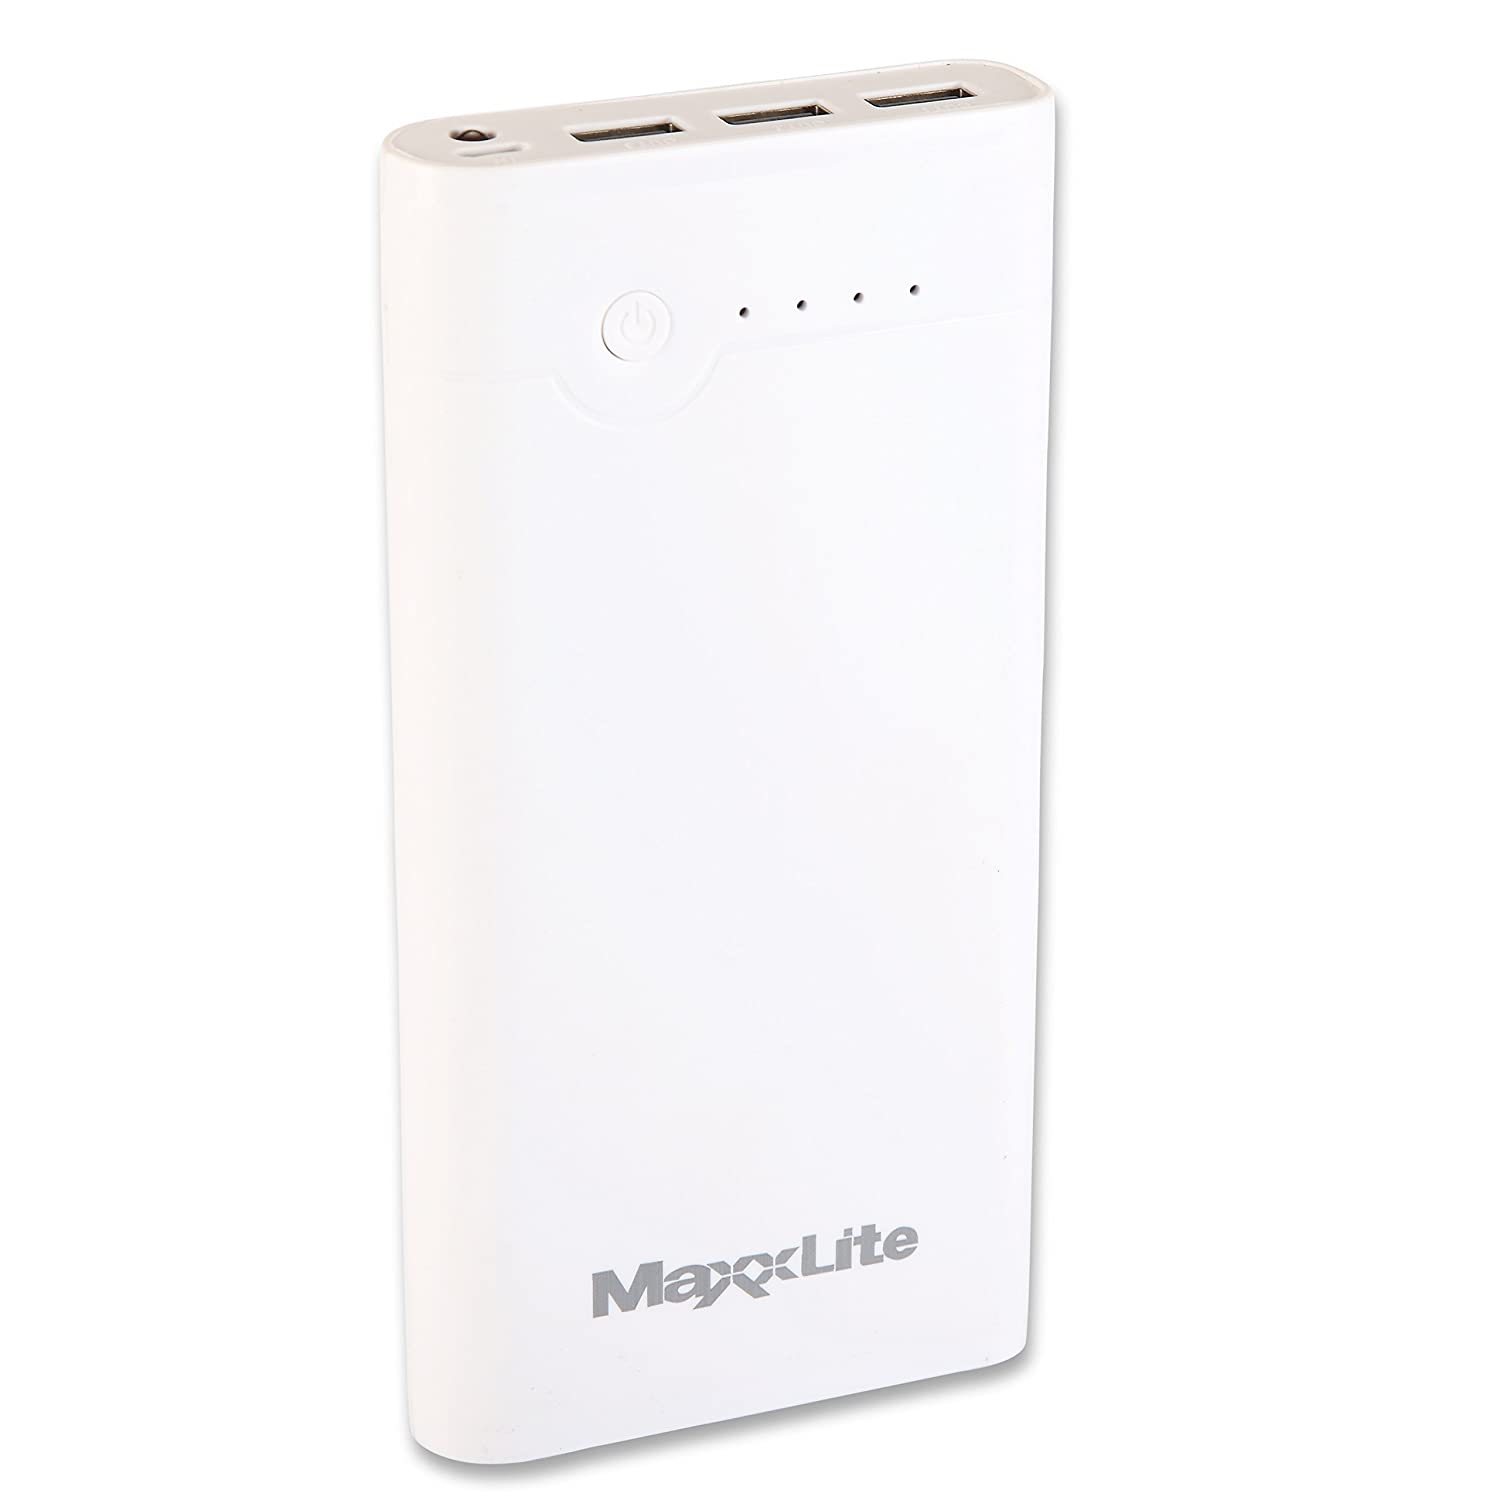 Maxxlite 24000mah power bank with 3 usb port led torch white maxxlite 24000mah power bank with 3 usb port led torch white amazon electronics fandeluxe Gallery